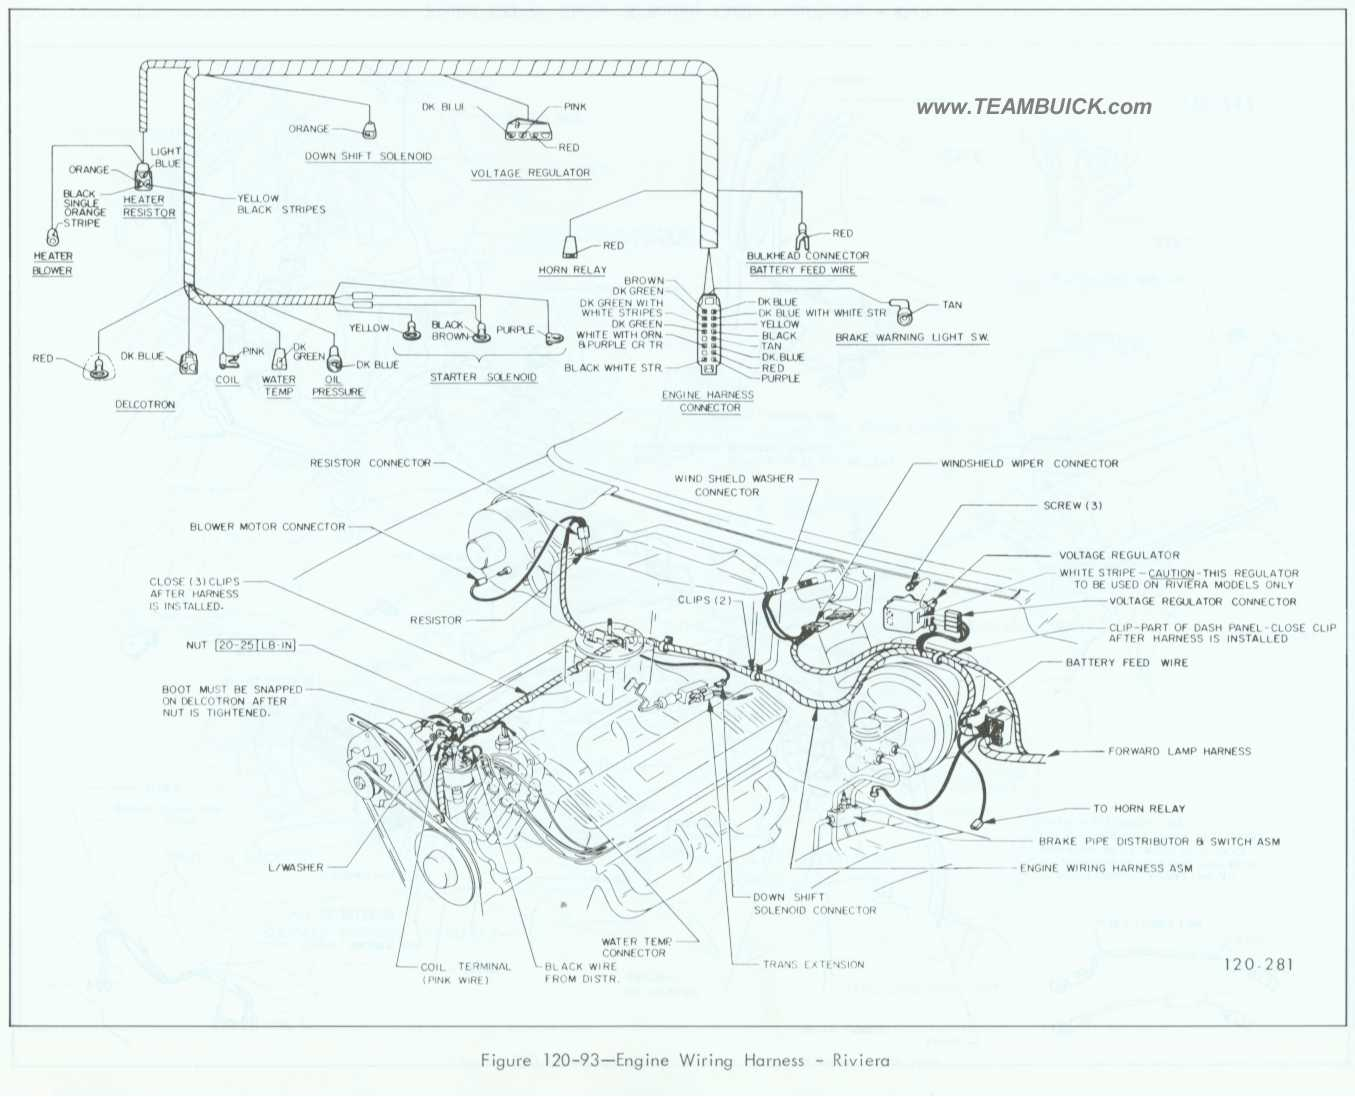 hight resolution of 1972 buick skylark wiring schematic wiring library rh 79 winebottlecrafts org 1965 buick riviera parts 1965